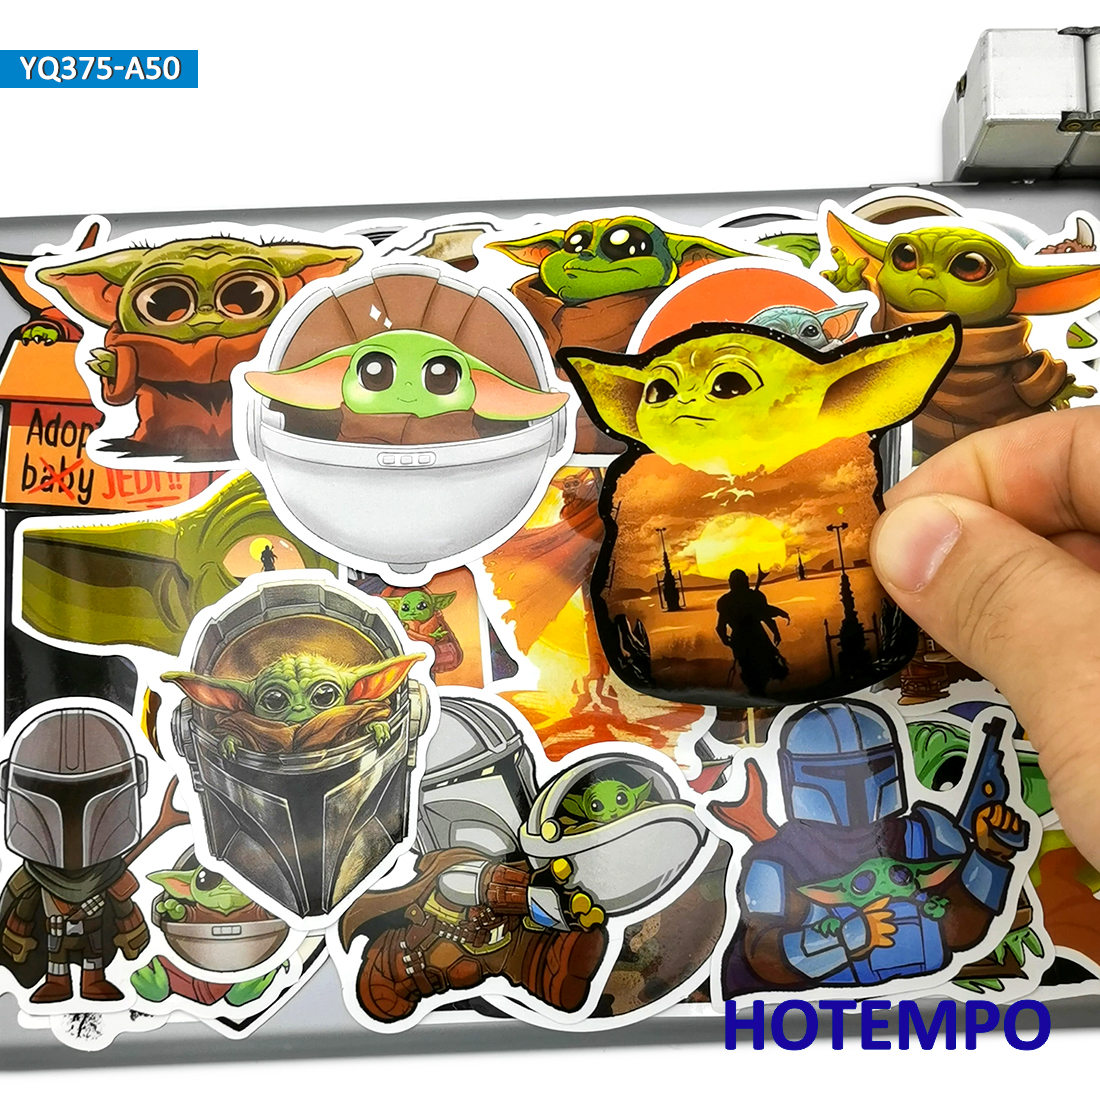 50pcs Cute Alien Baby ET Style Anime Stickers Toys for Kids Mobile Phone Laptop Suitcase Skateboard Bike Cartoon Decal Stickers(China)